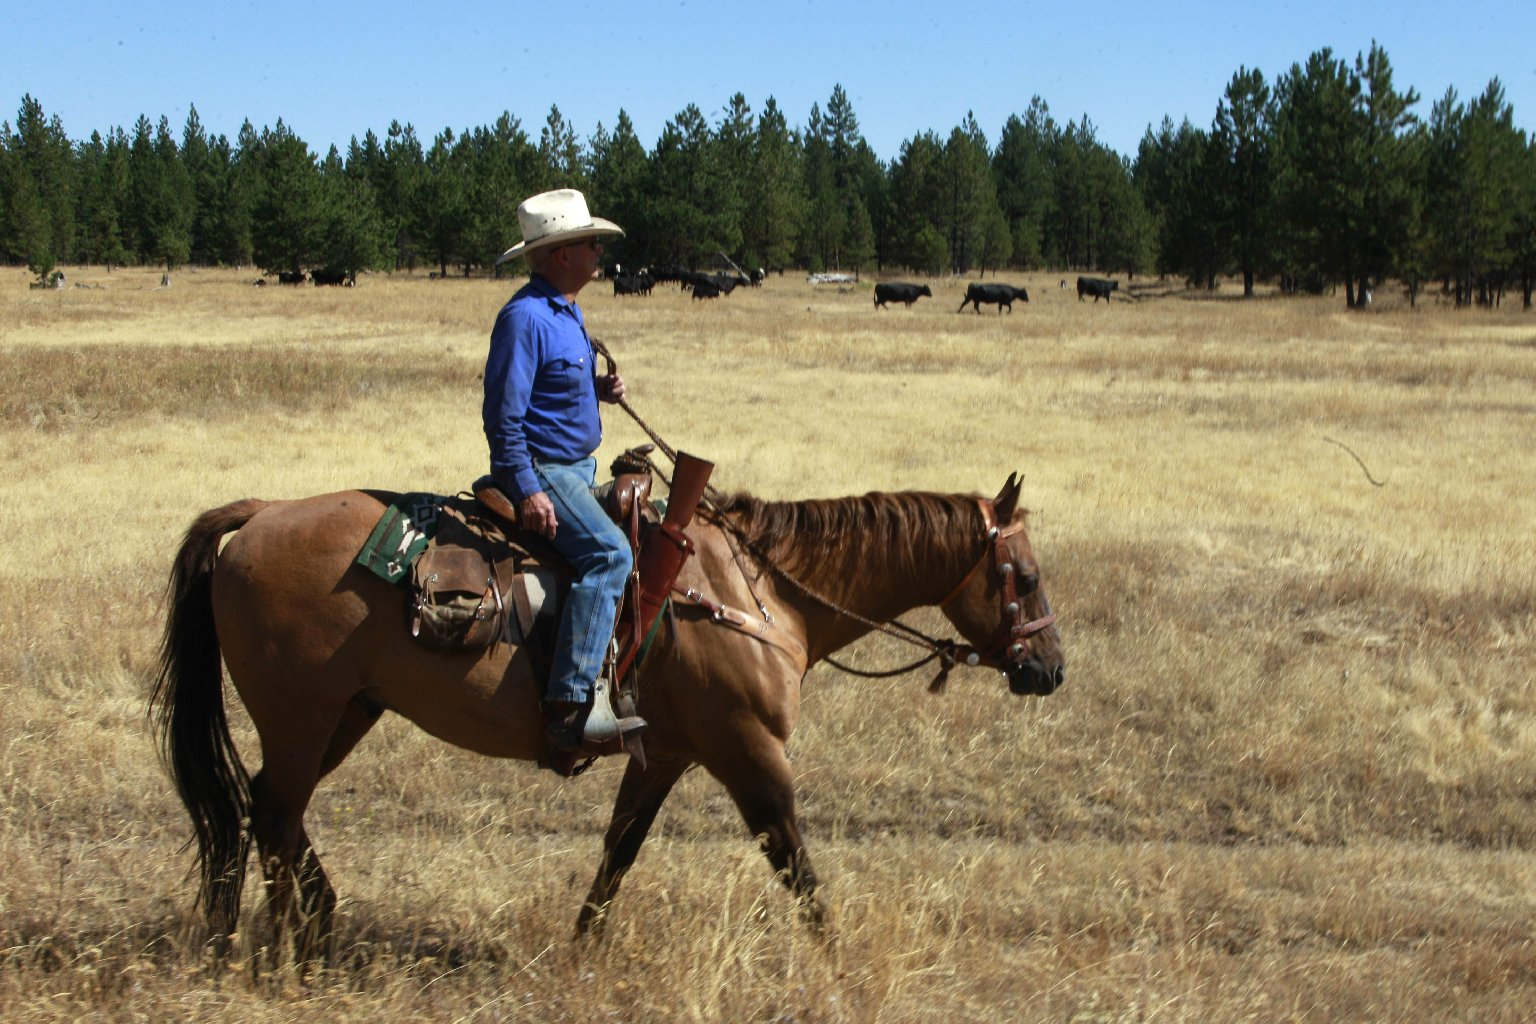 Rancher Denny Johnson, looks over his cattle in Joseph, Ore., in 2011. Conservationists say ranchers raising beef cattle are responsible for the decline of some wildlife. Photo: Rick Bowmer/ASSOCIATED PRESS